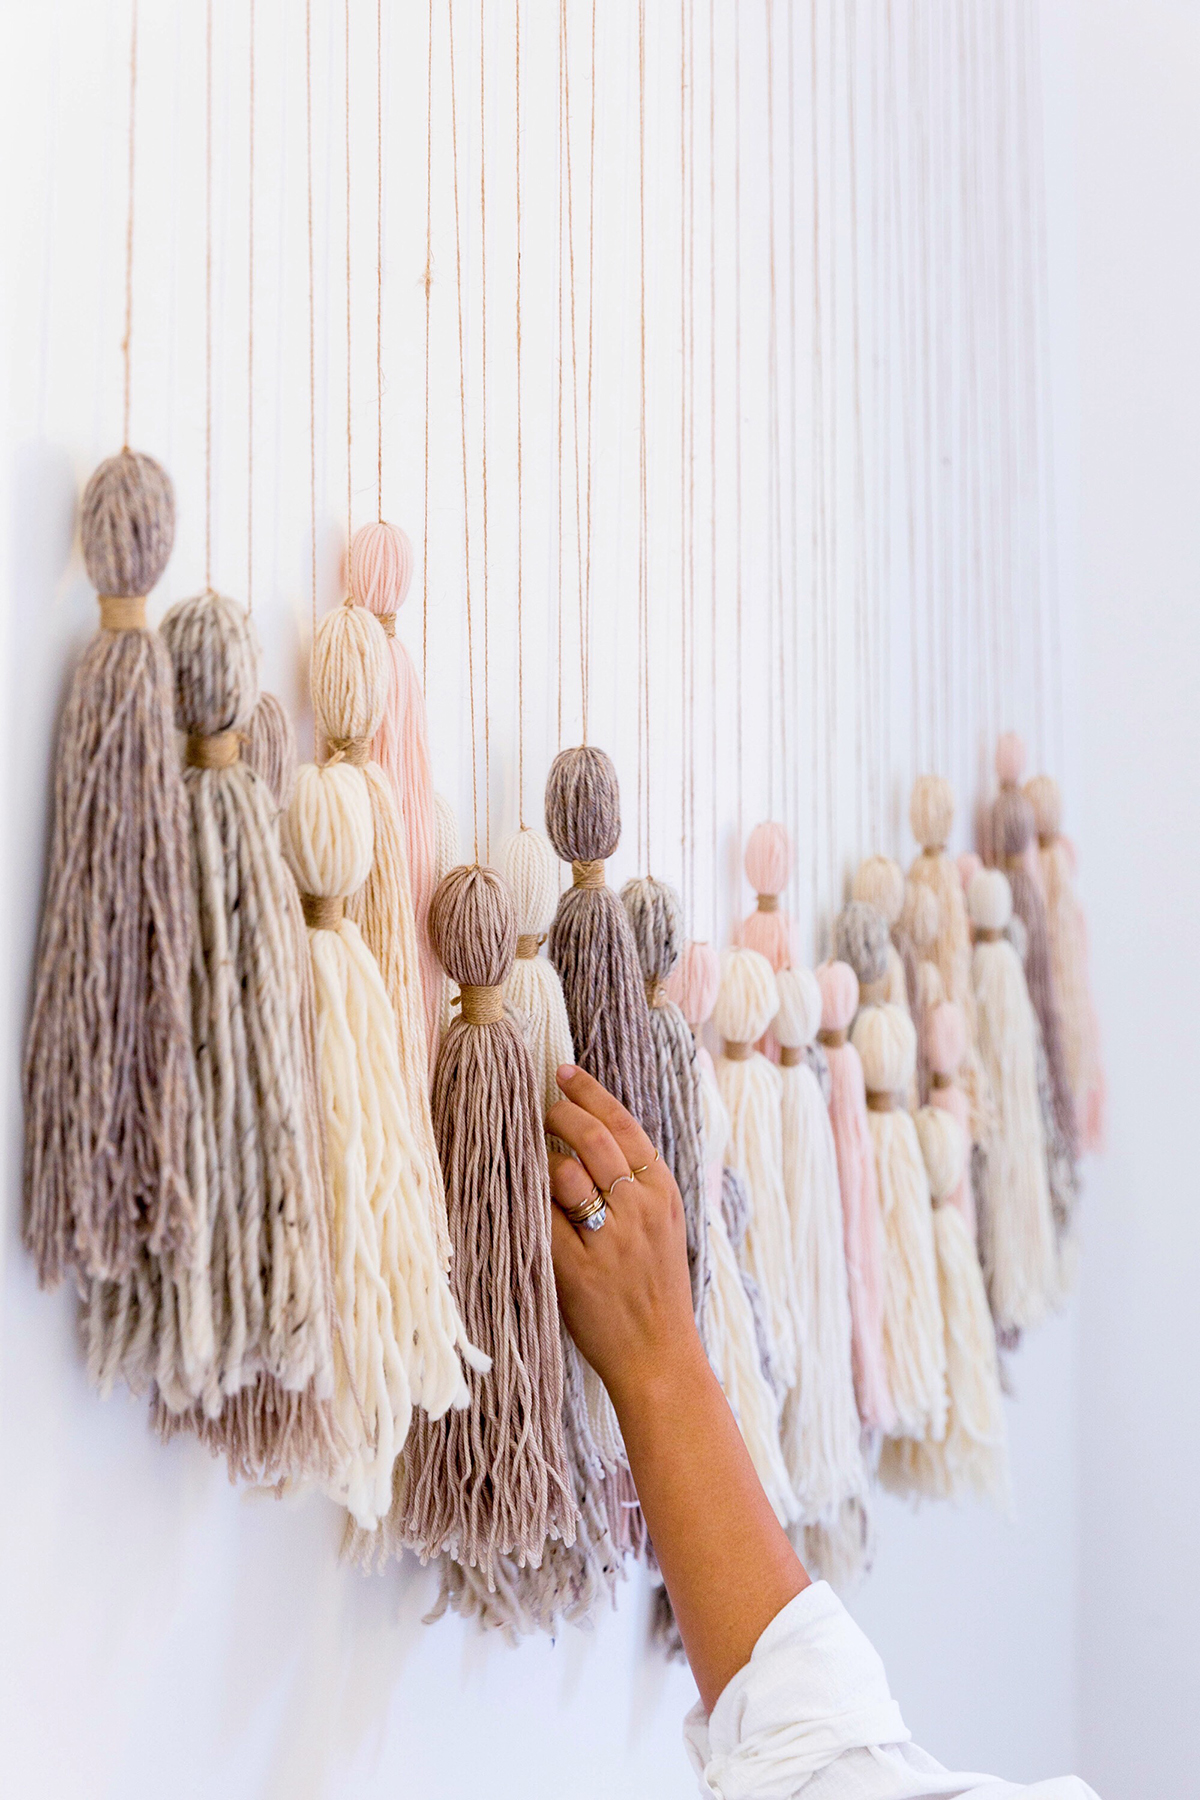 Diy tassel wall hanging honestly wtf for Making wall decorations